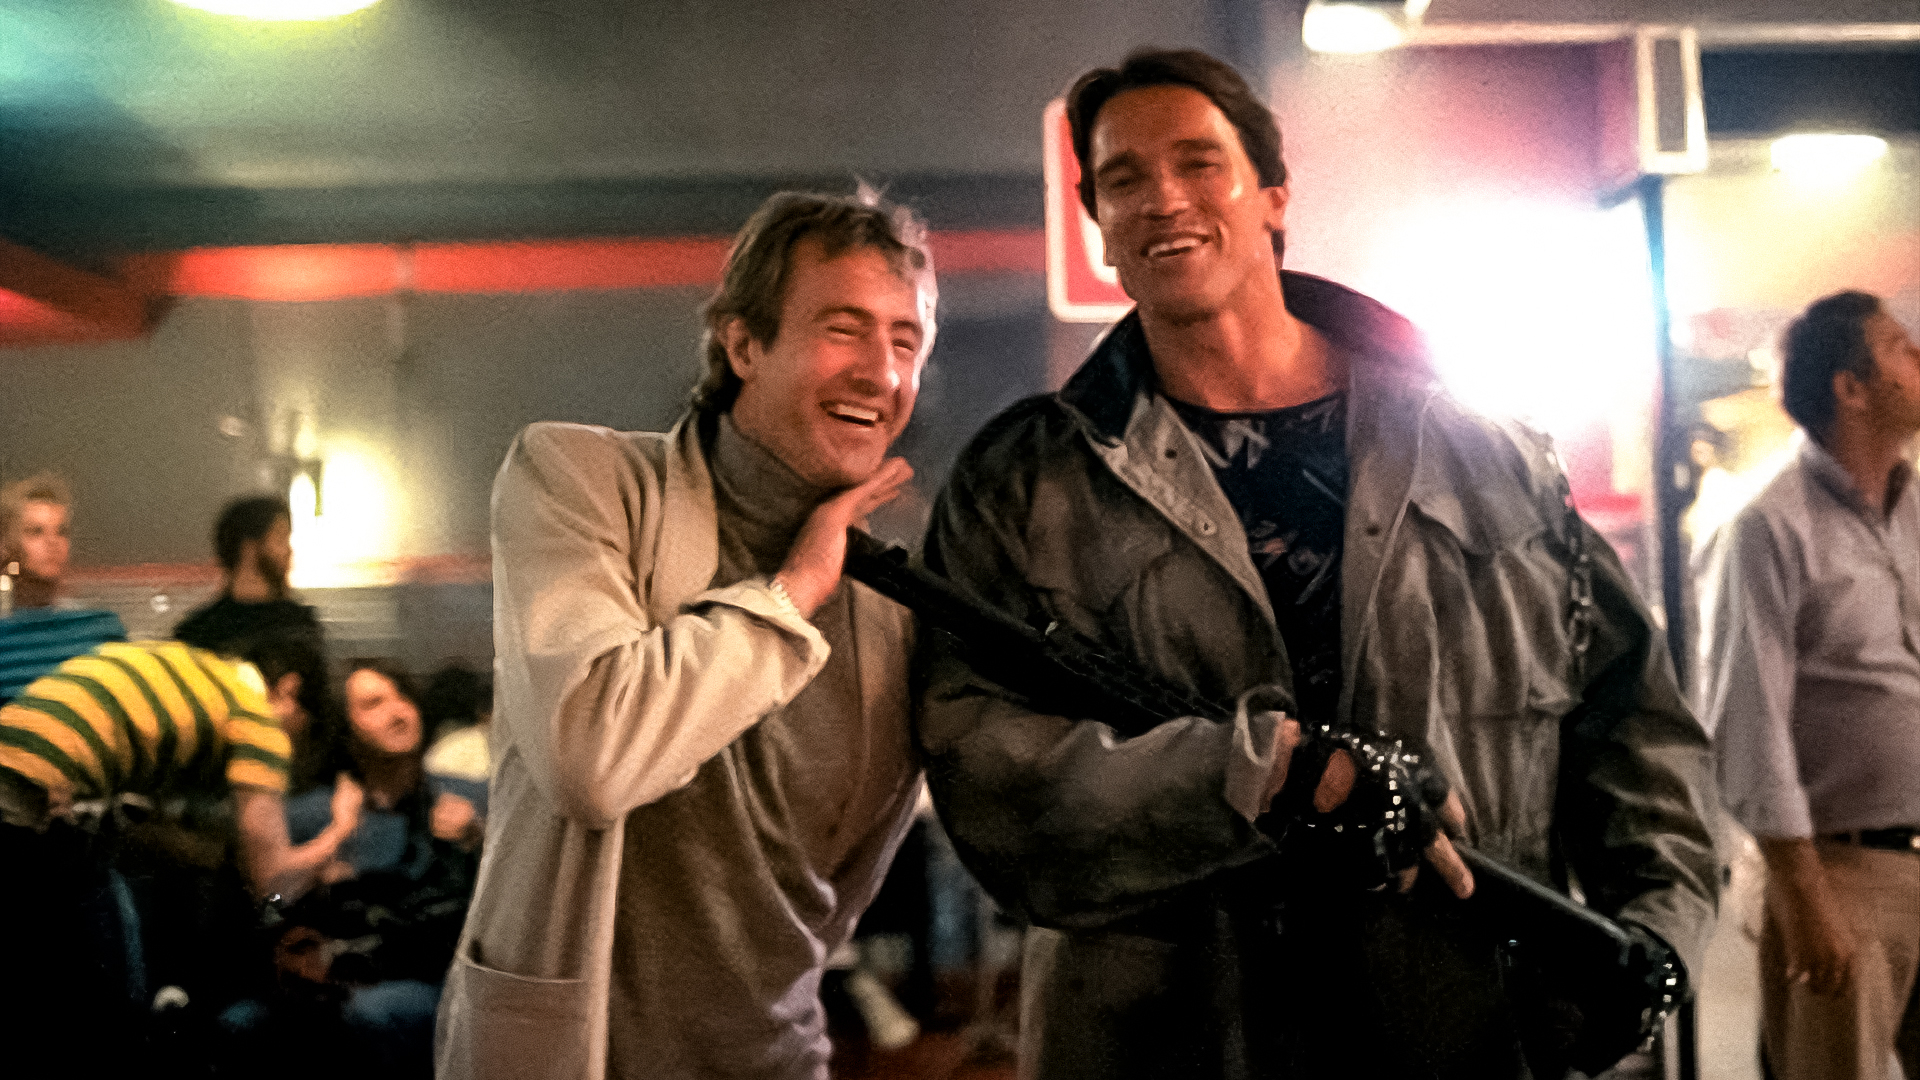 The Terminator Behind The Scenes Executive Producer John Daly and Arnold Schwarzenegger